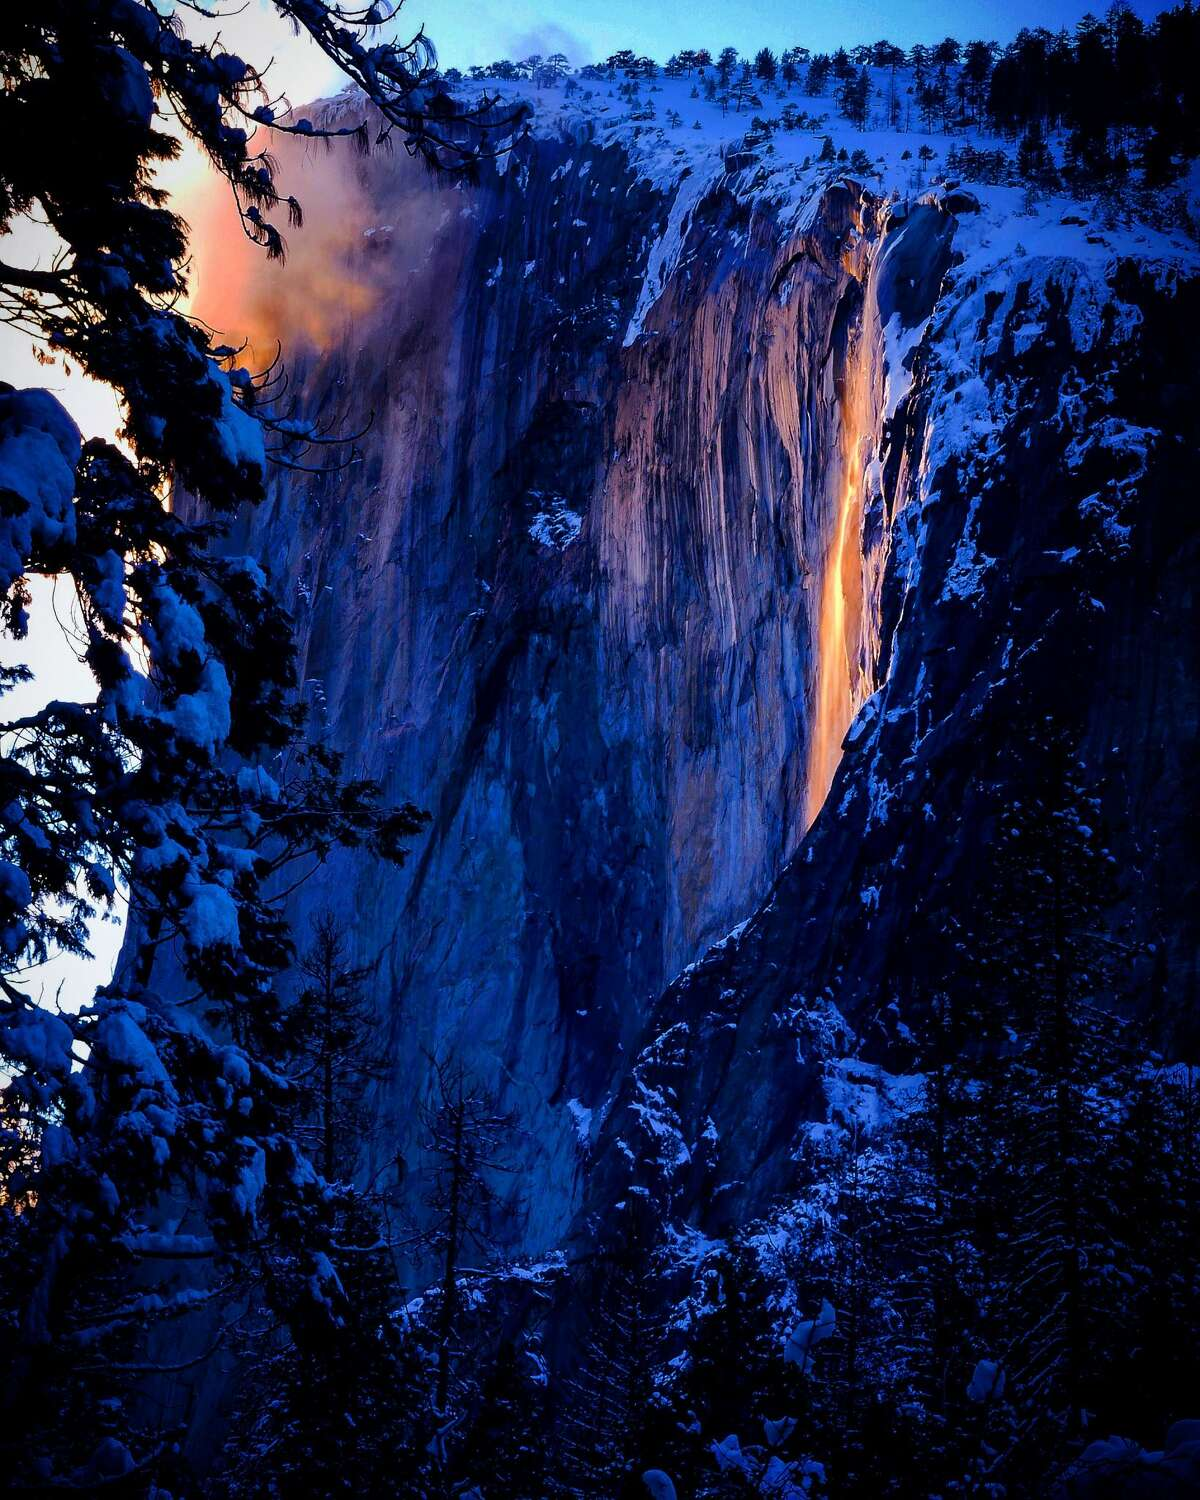 The Horsetail Fall phenomenon commonly known as a